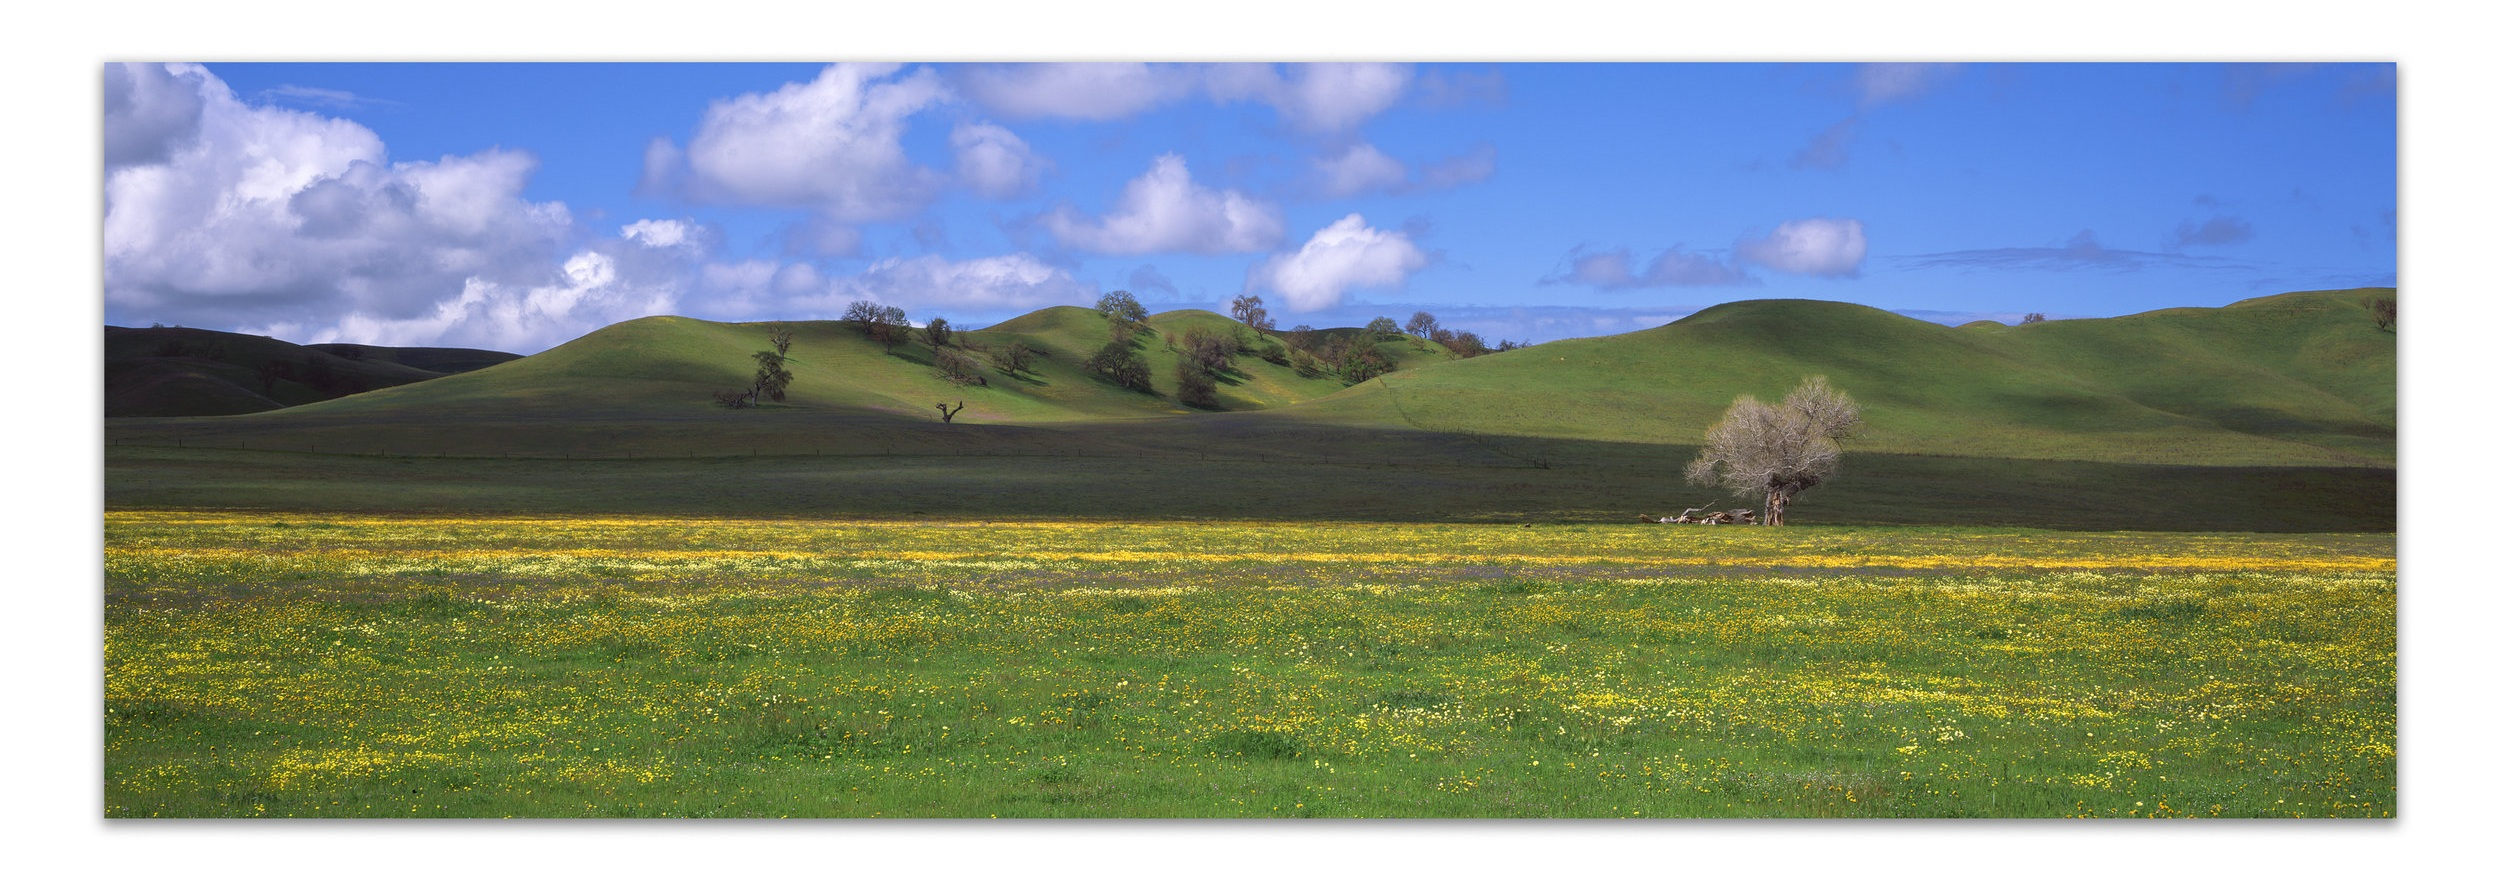 Light Play on a Broad Meadow   | California |  Edition of 11    Clouds pass on a spring afternoon casting shadows across the brief sea of green covering the hills of California's Central Valley.    20x60, 24x72, 30x90, 40x120, 50x150 (Panels Only)